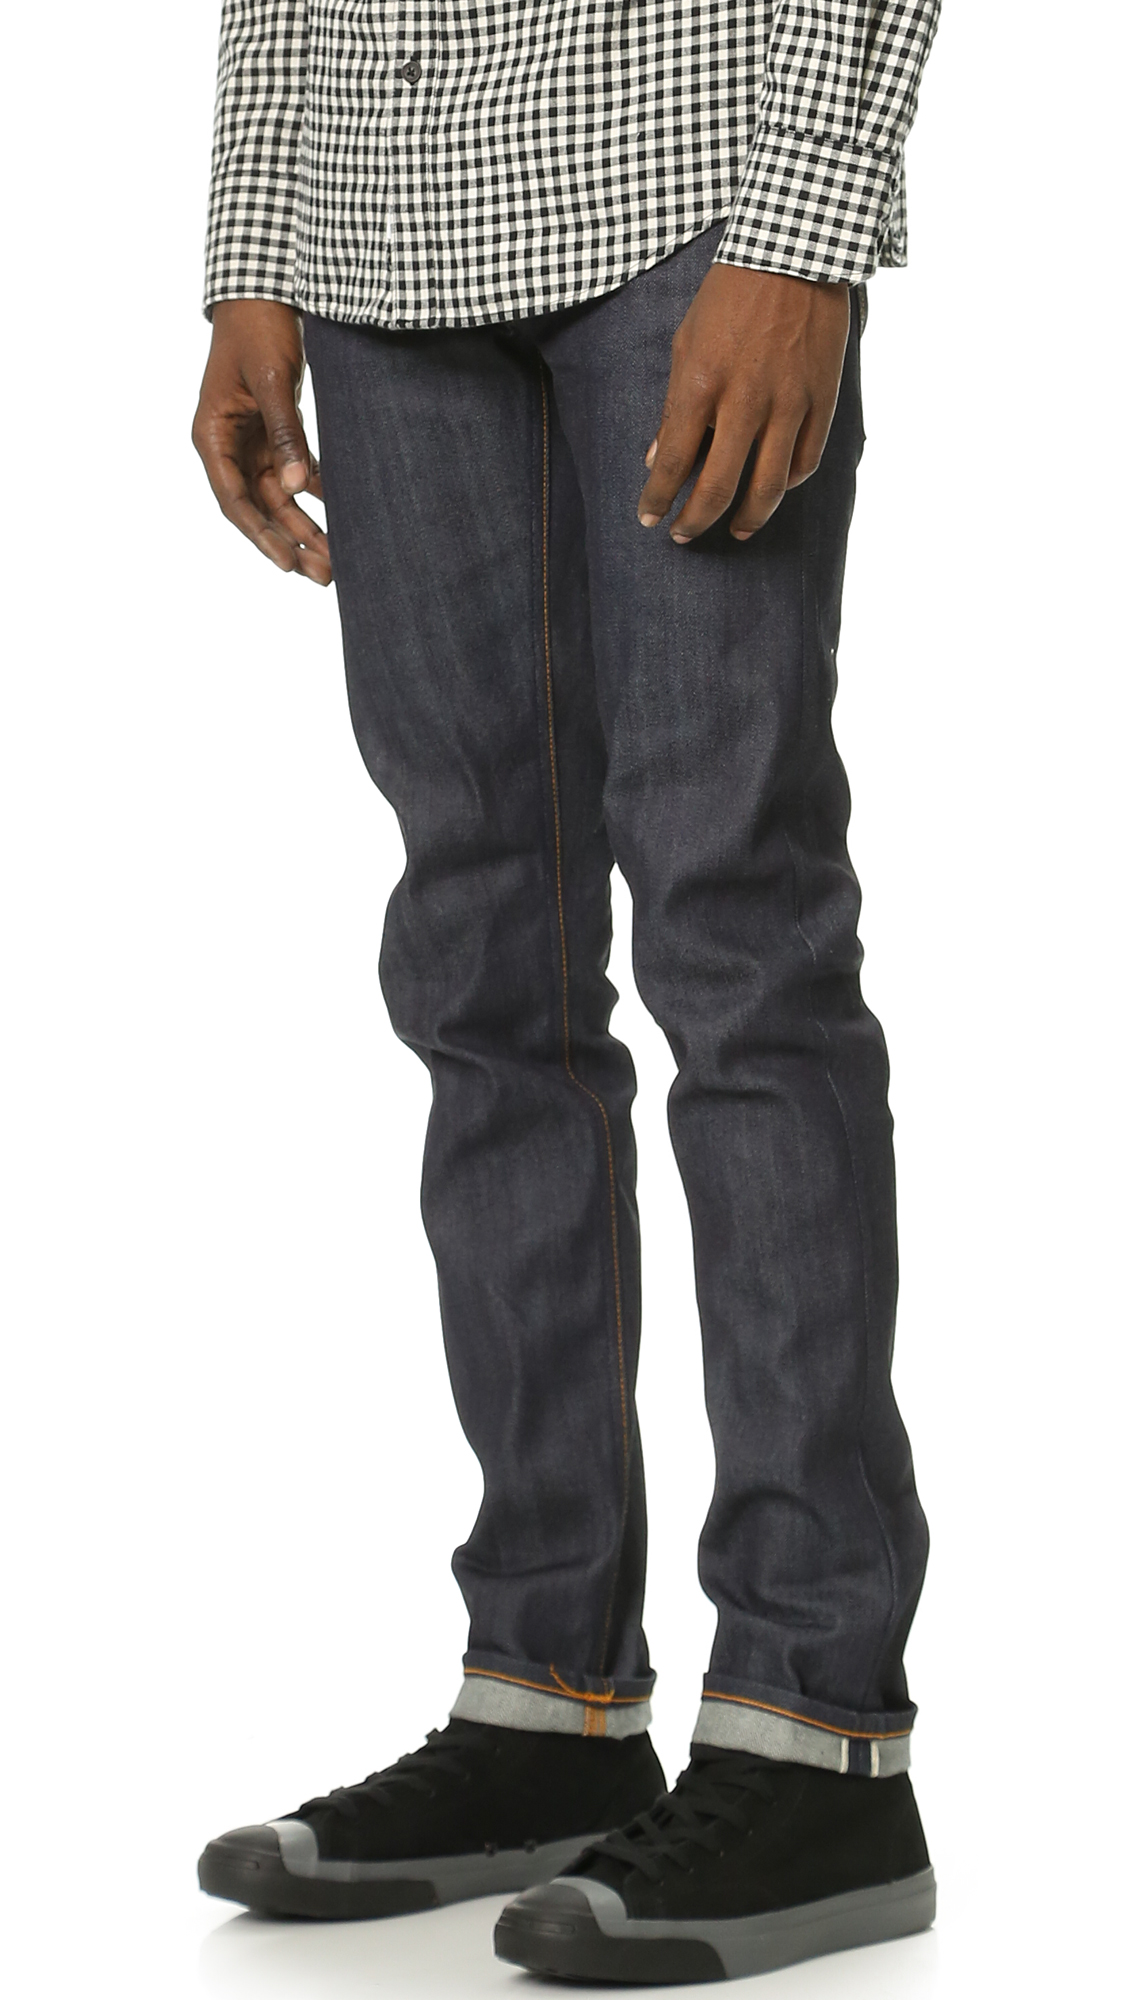 Nudie Jeans Co. Thin Finn Dry Selvage Jeans  b3b11bac0834